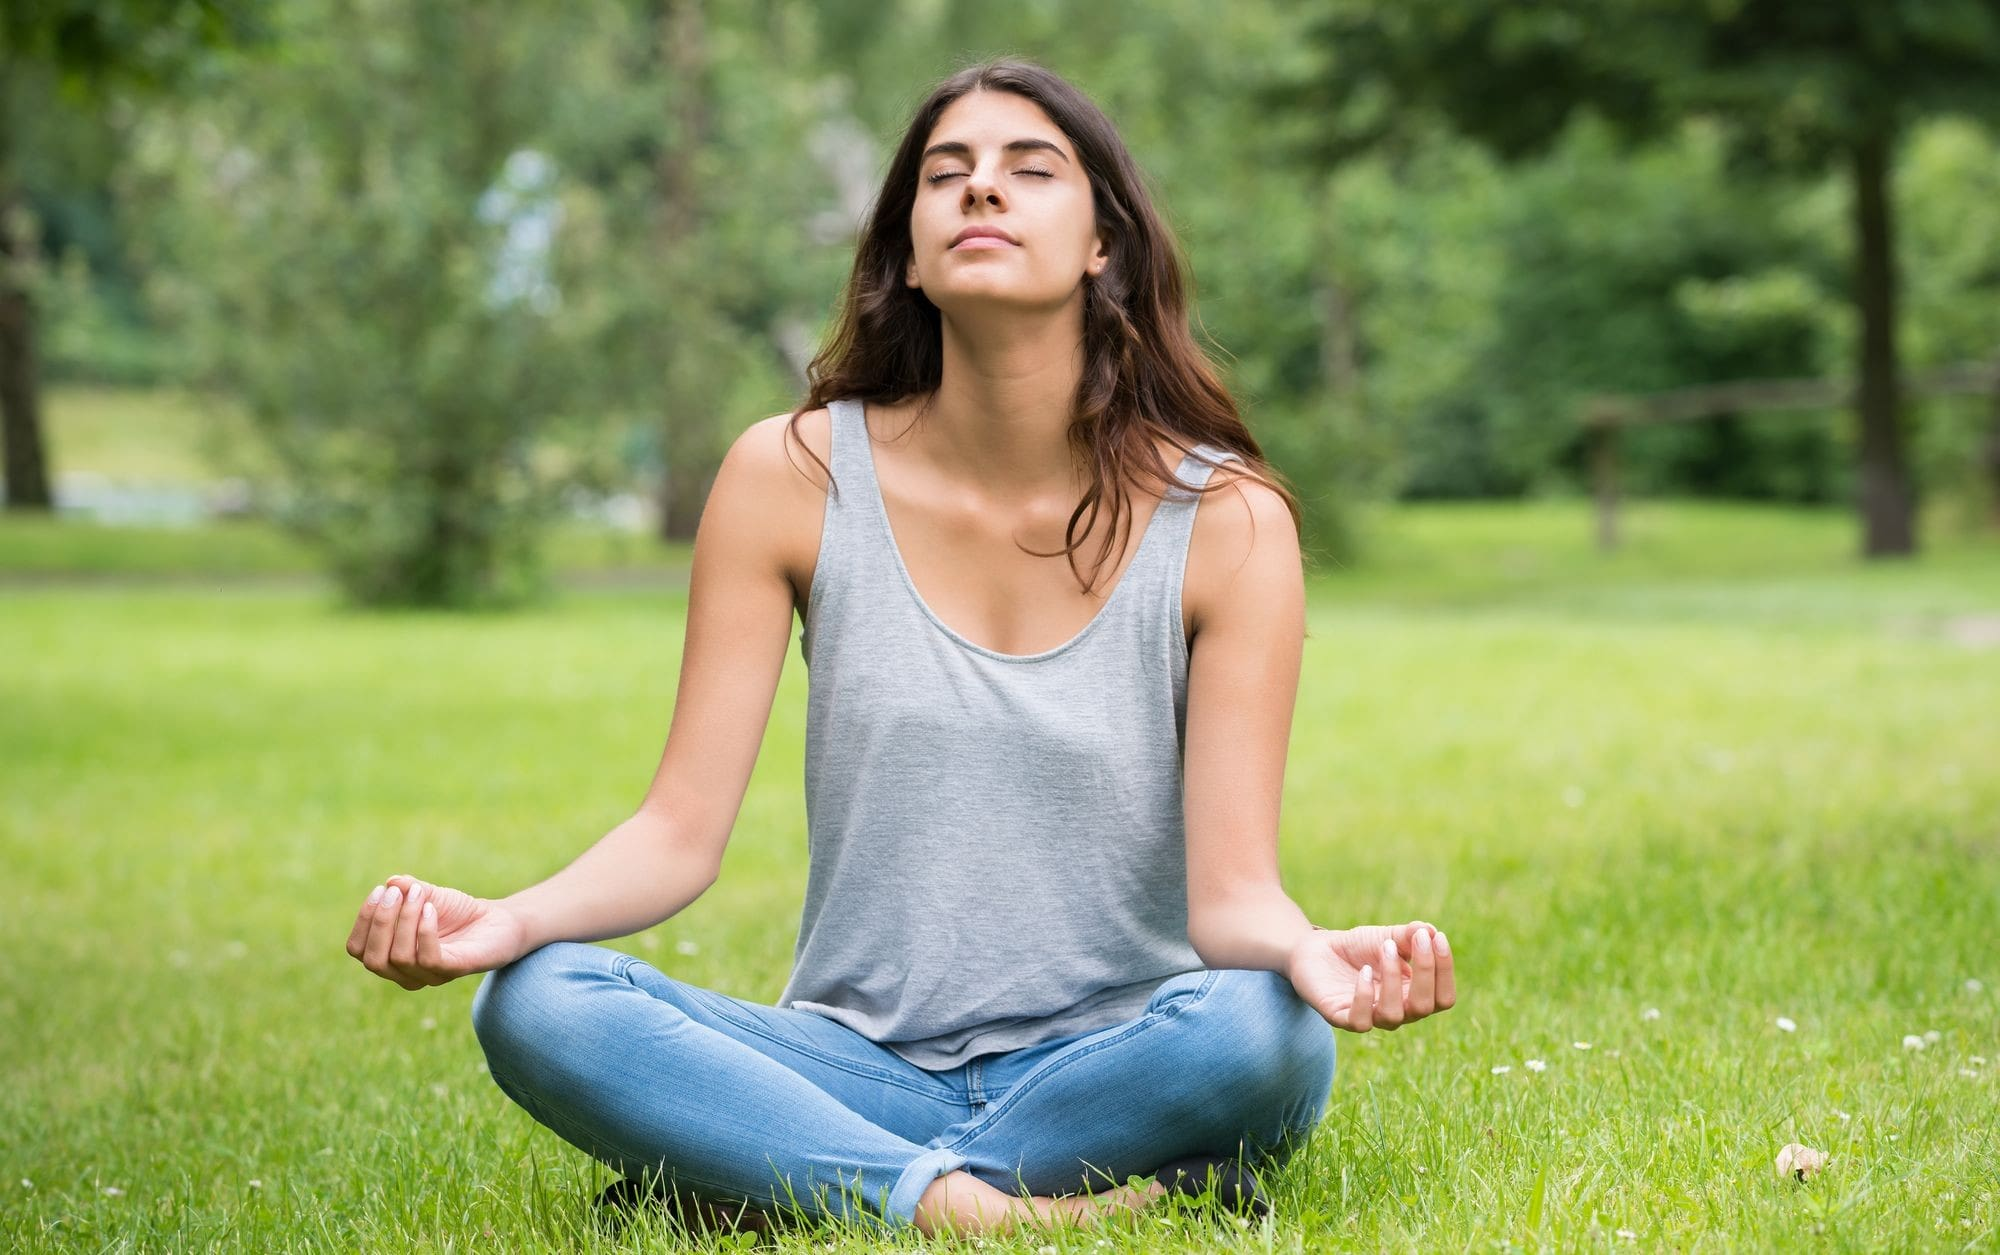 a woman sat crossed legged on grass, meditating, relieving stress, with her eyes closed.